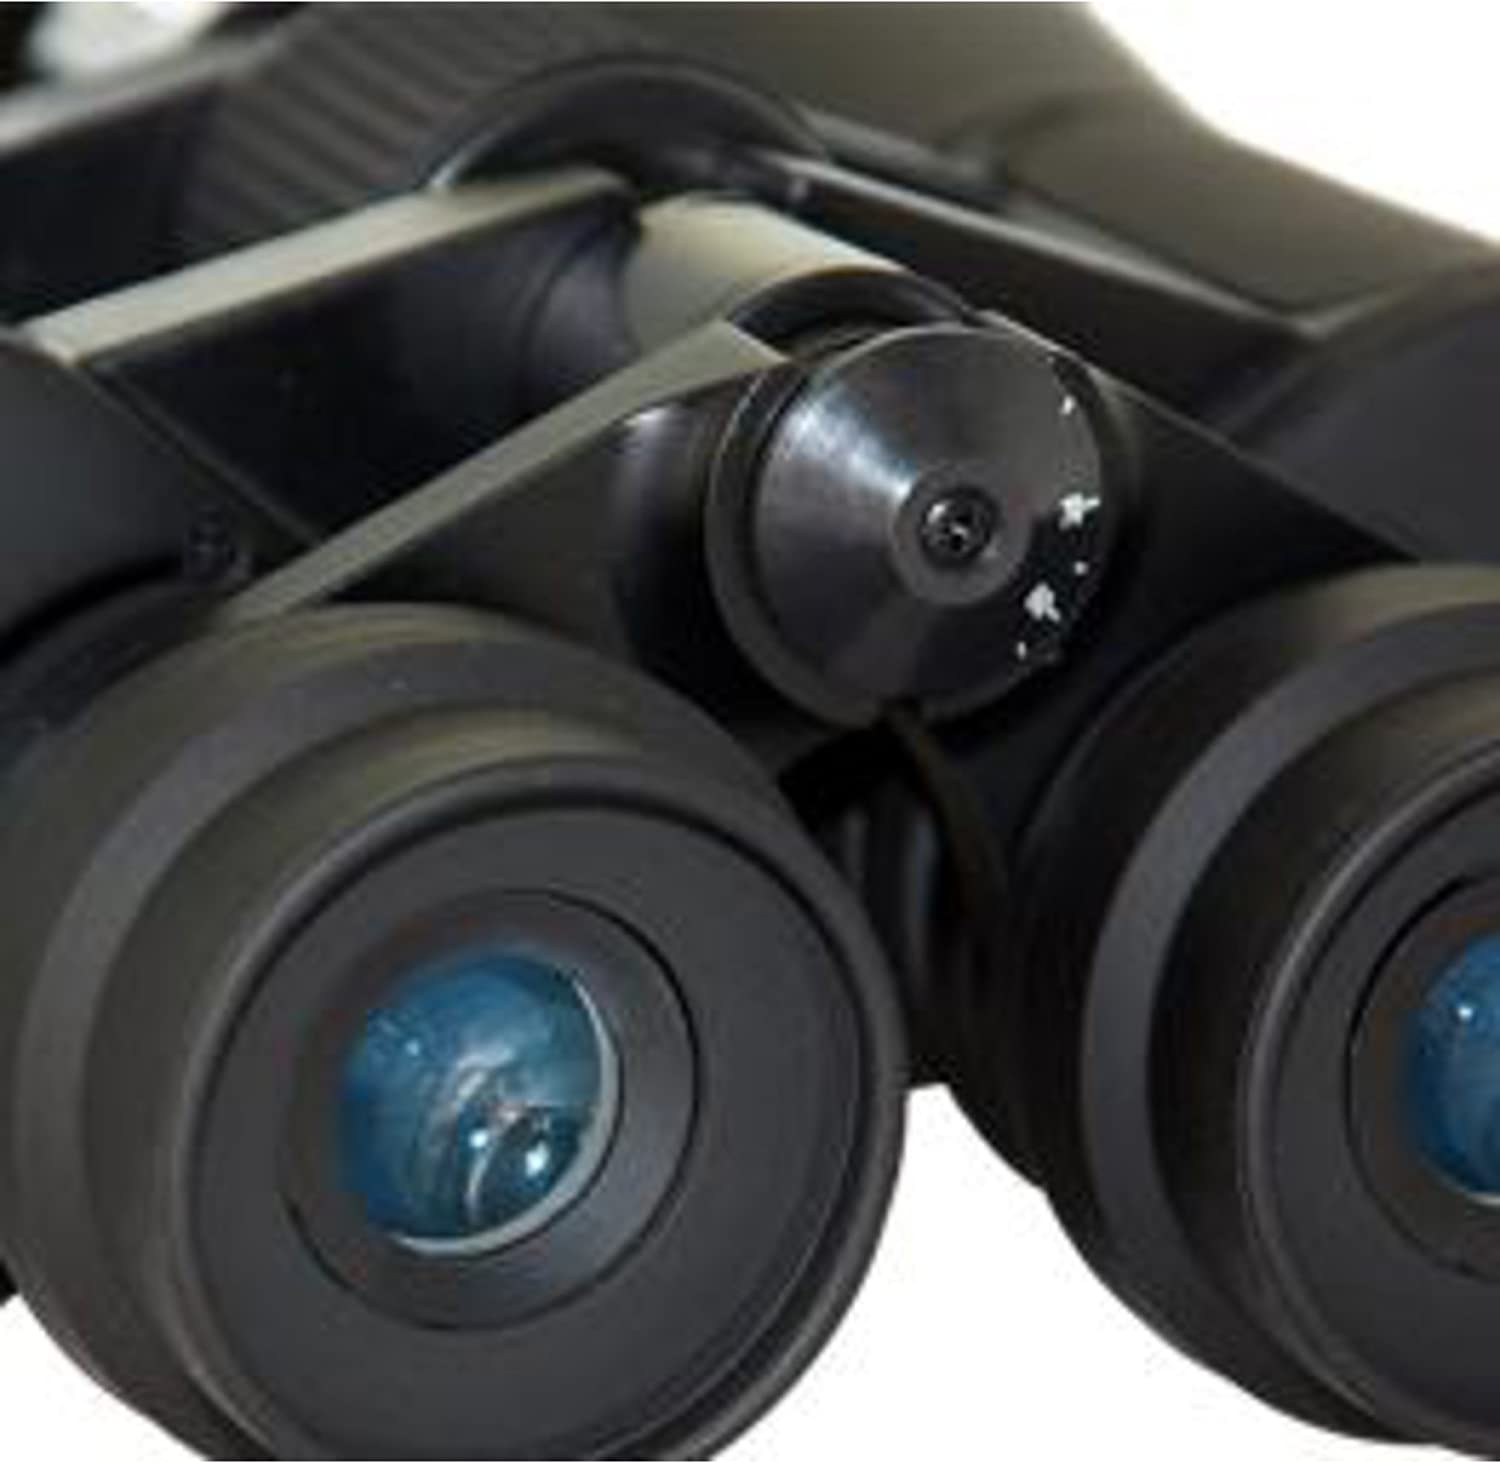 Omegon Zoom-Fernglas Zoomstar 15-45x80